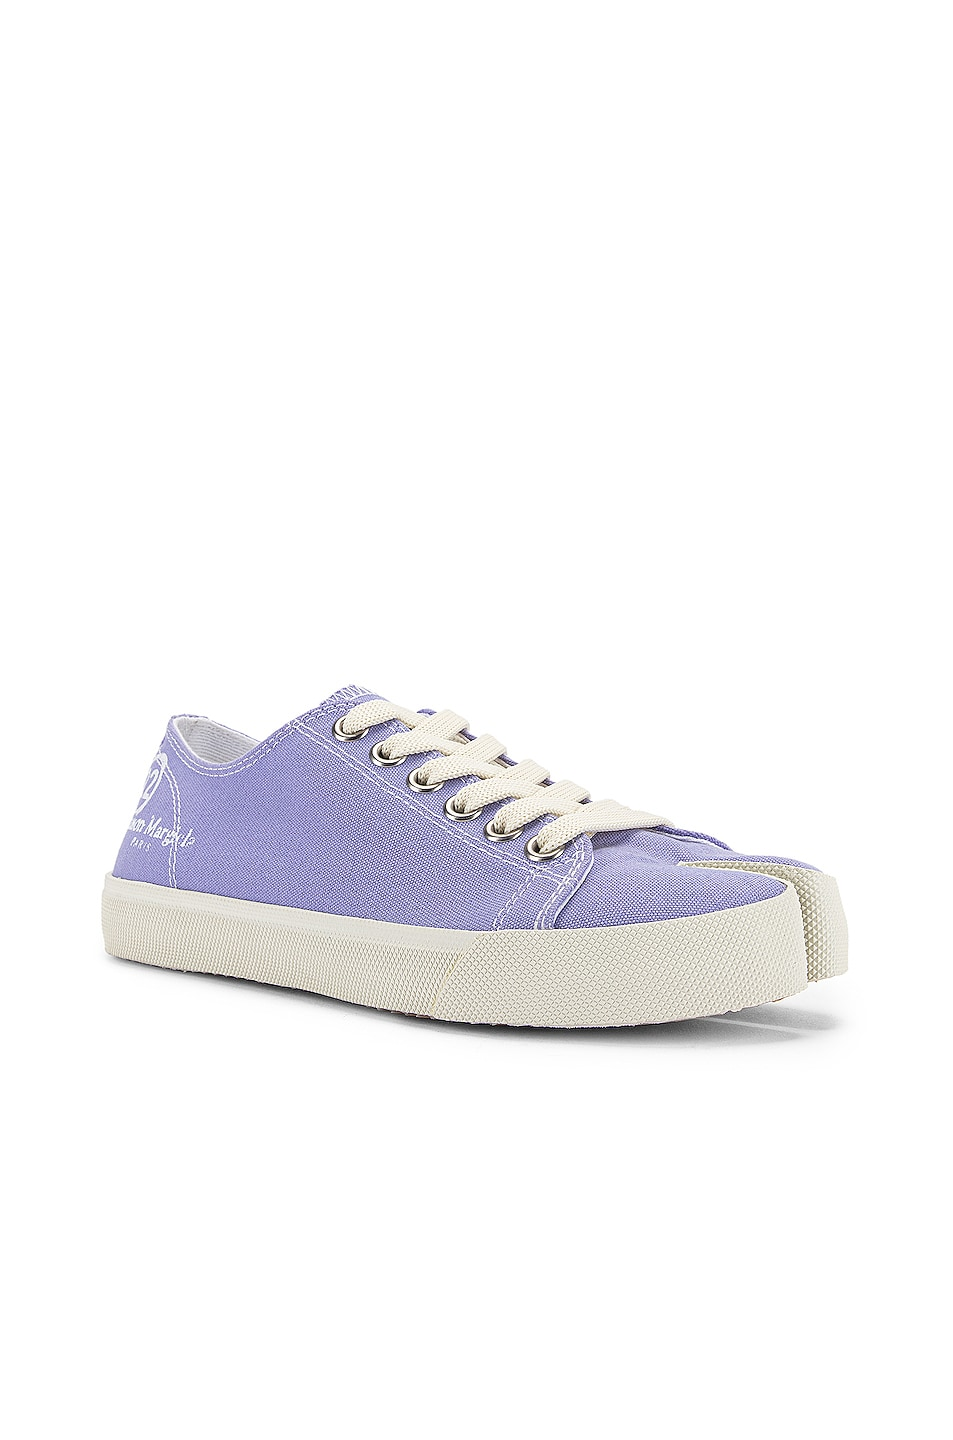 Image 3 of Maison Margiela Tabi Low Top Canvas Sneakers in Thistle